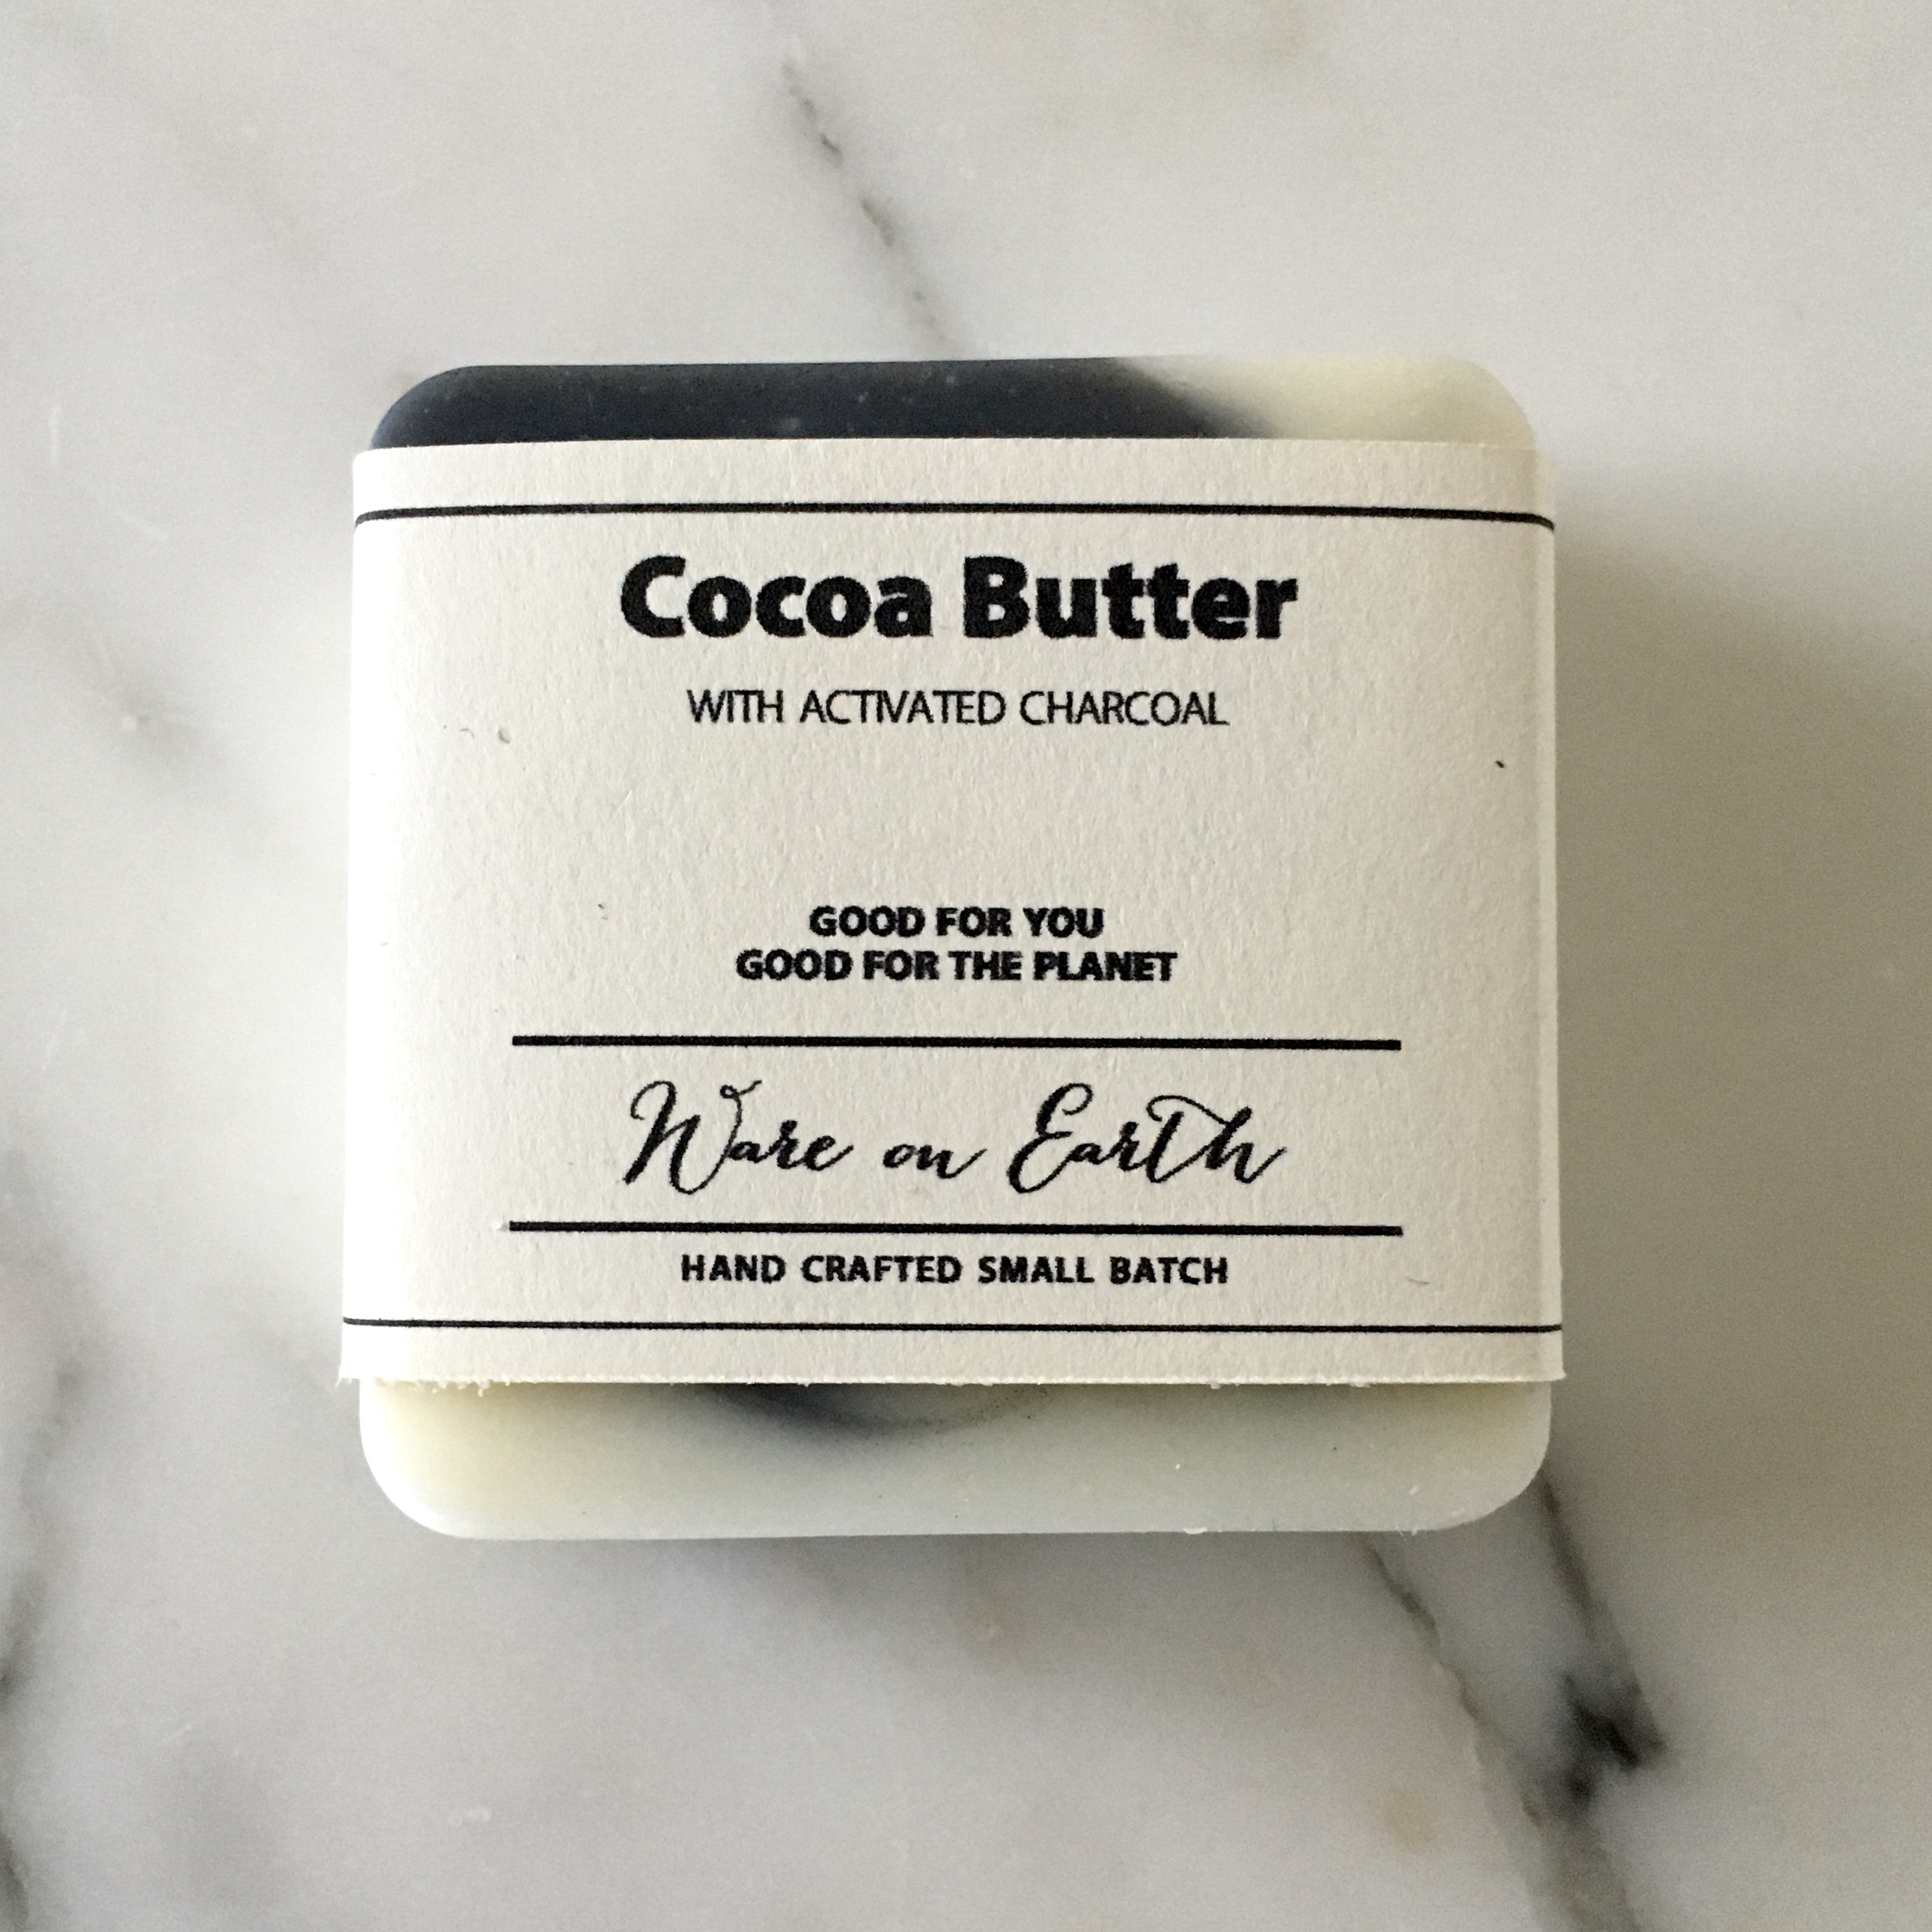 Cocoa Butter with Activated Charcoal